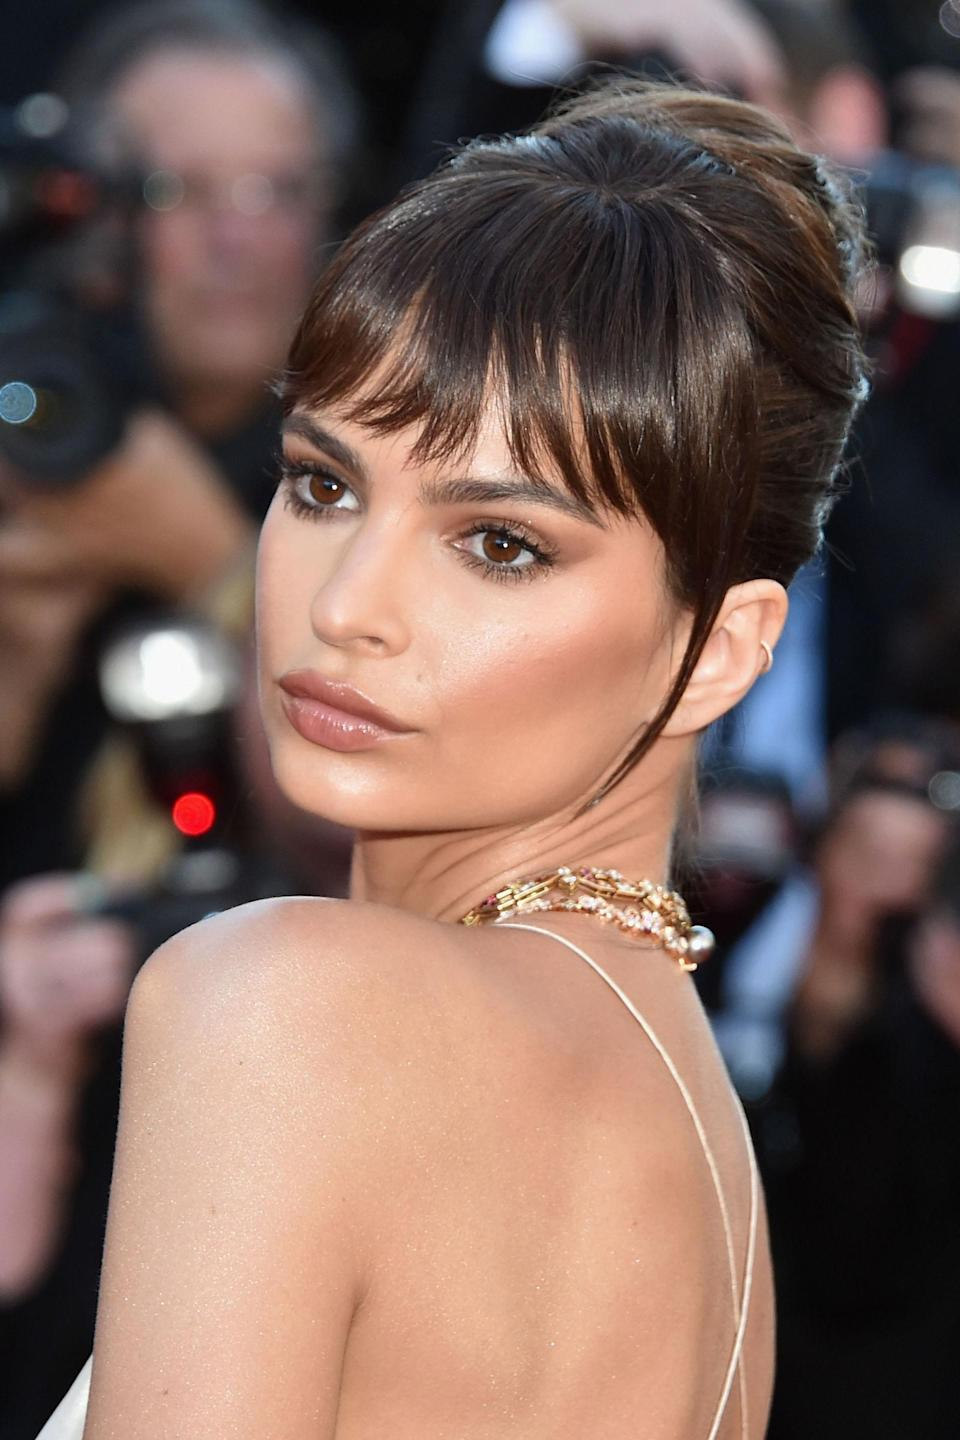 <p>Looking like a modern day Audrey Hepburn, Ratajkowski's make-up featured shades of earthy neutrals, complementing her chocolate coloured hair.</p>